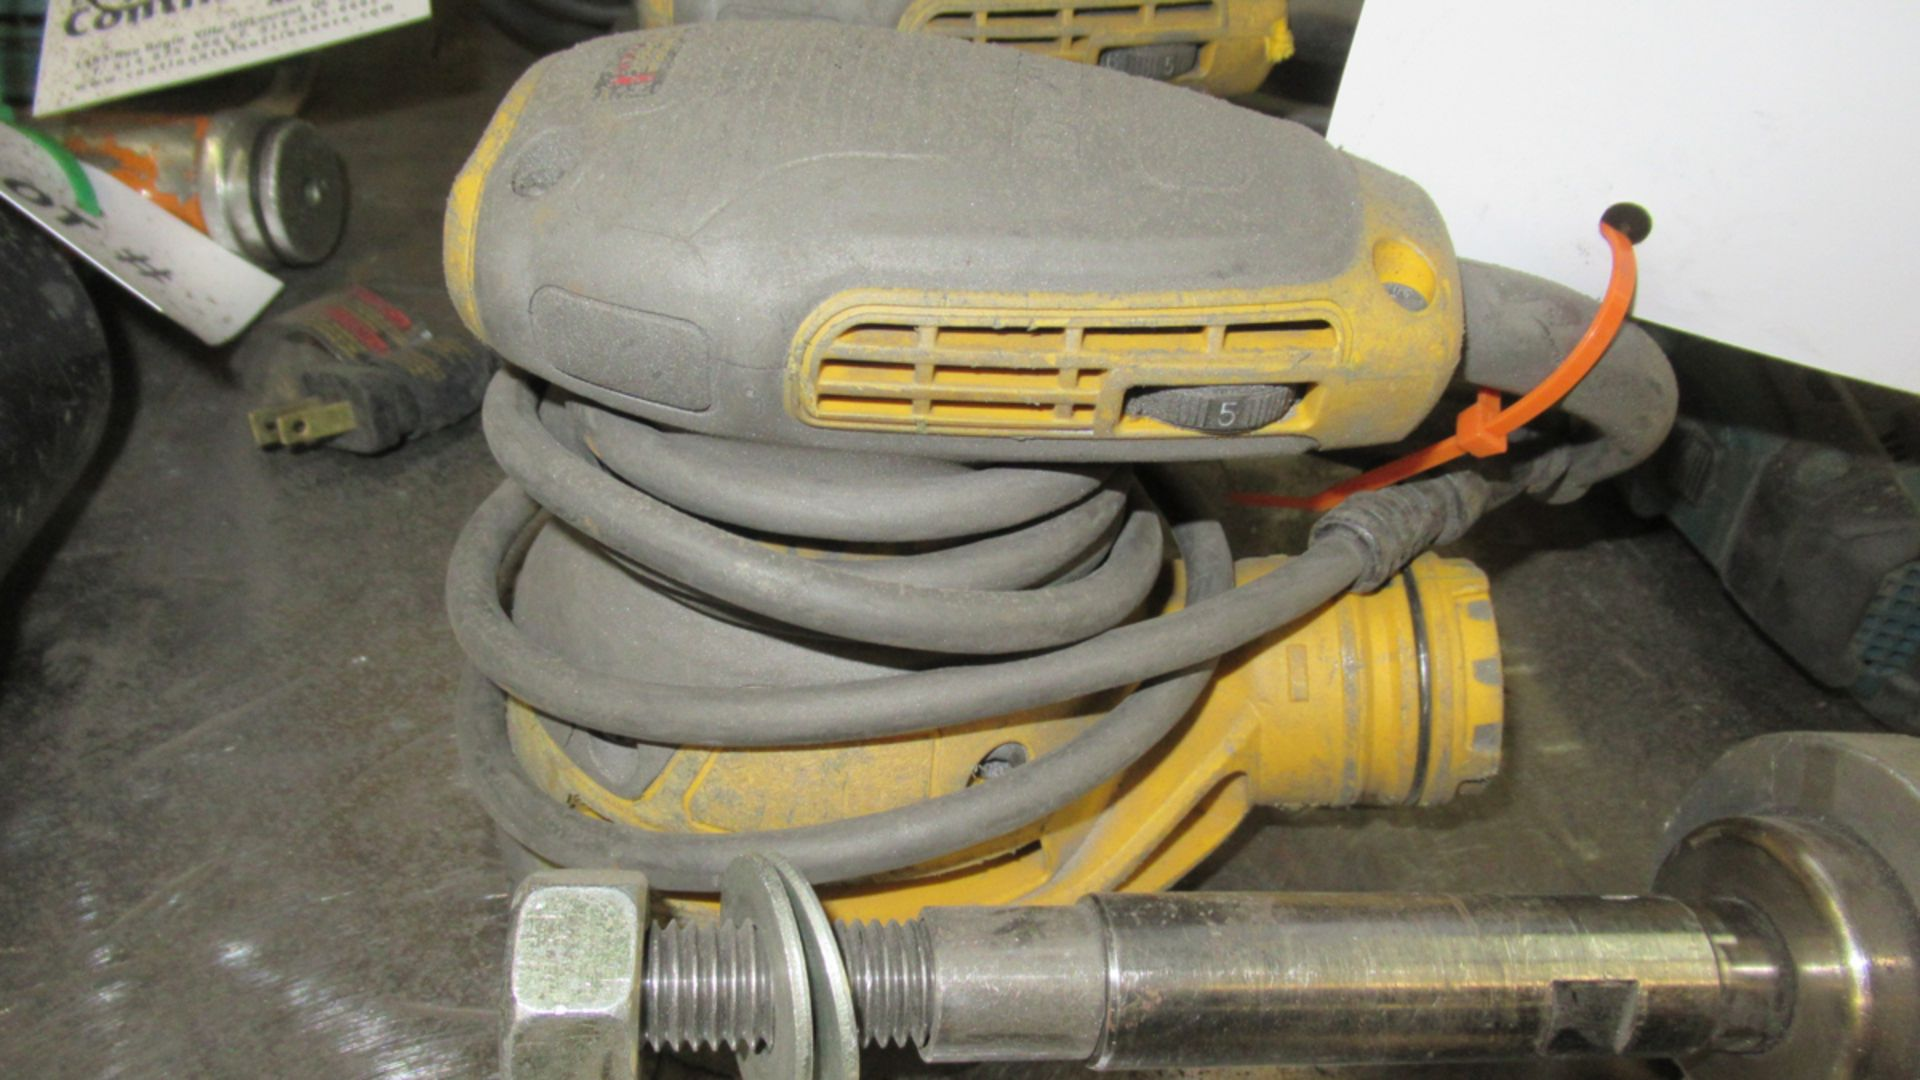 Lot 37 - LOT OF 4 ELECTRIC PALM SANDERS